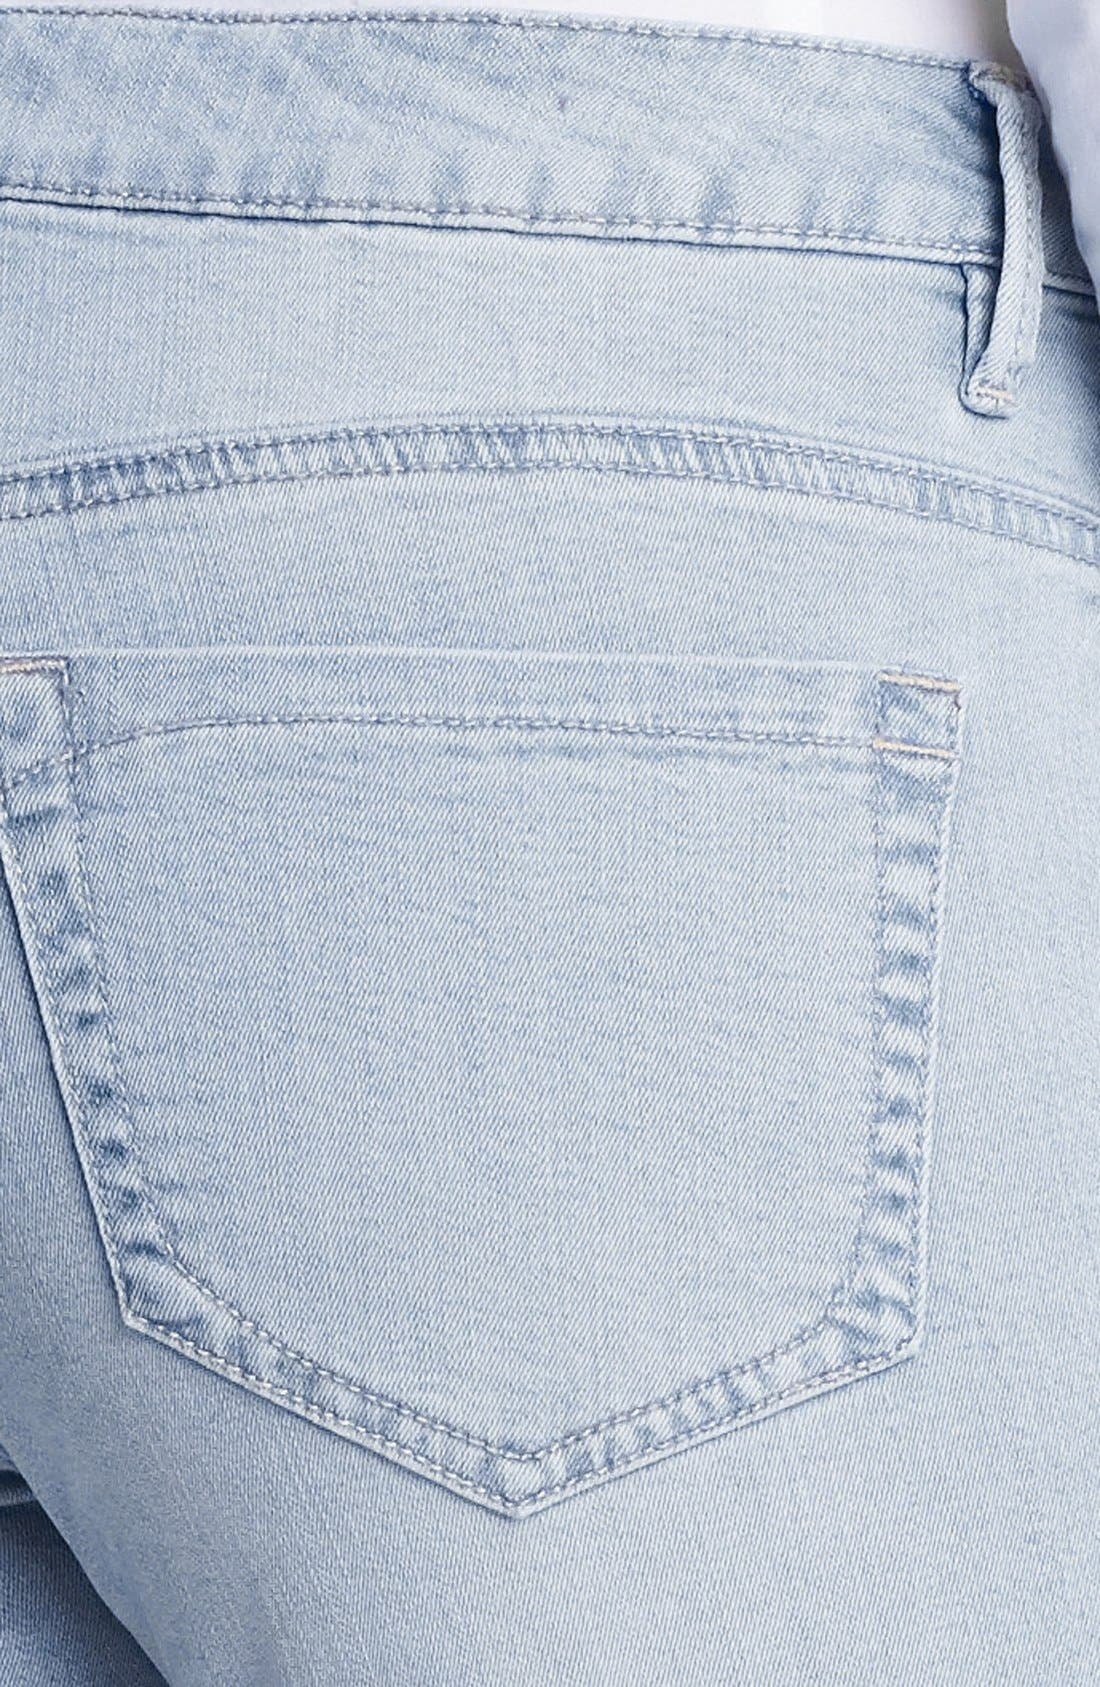 Alternate Image 3  - Christopher Blue 'Goodwin' Bootcut Stretch Jeans